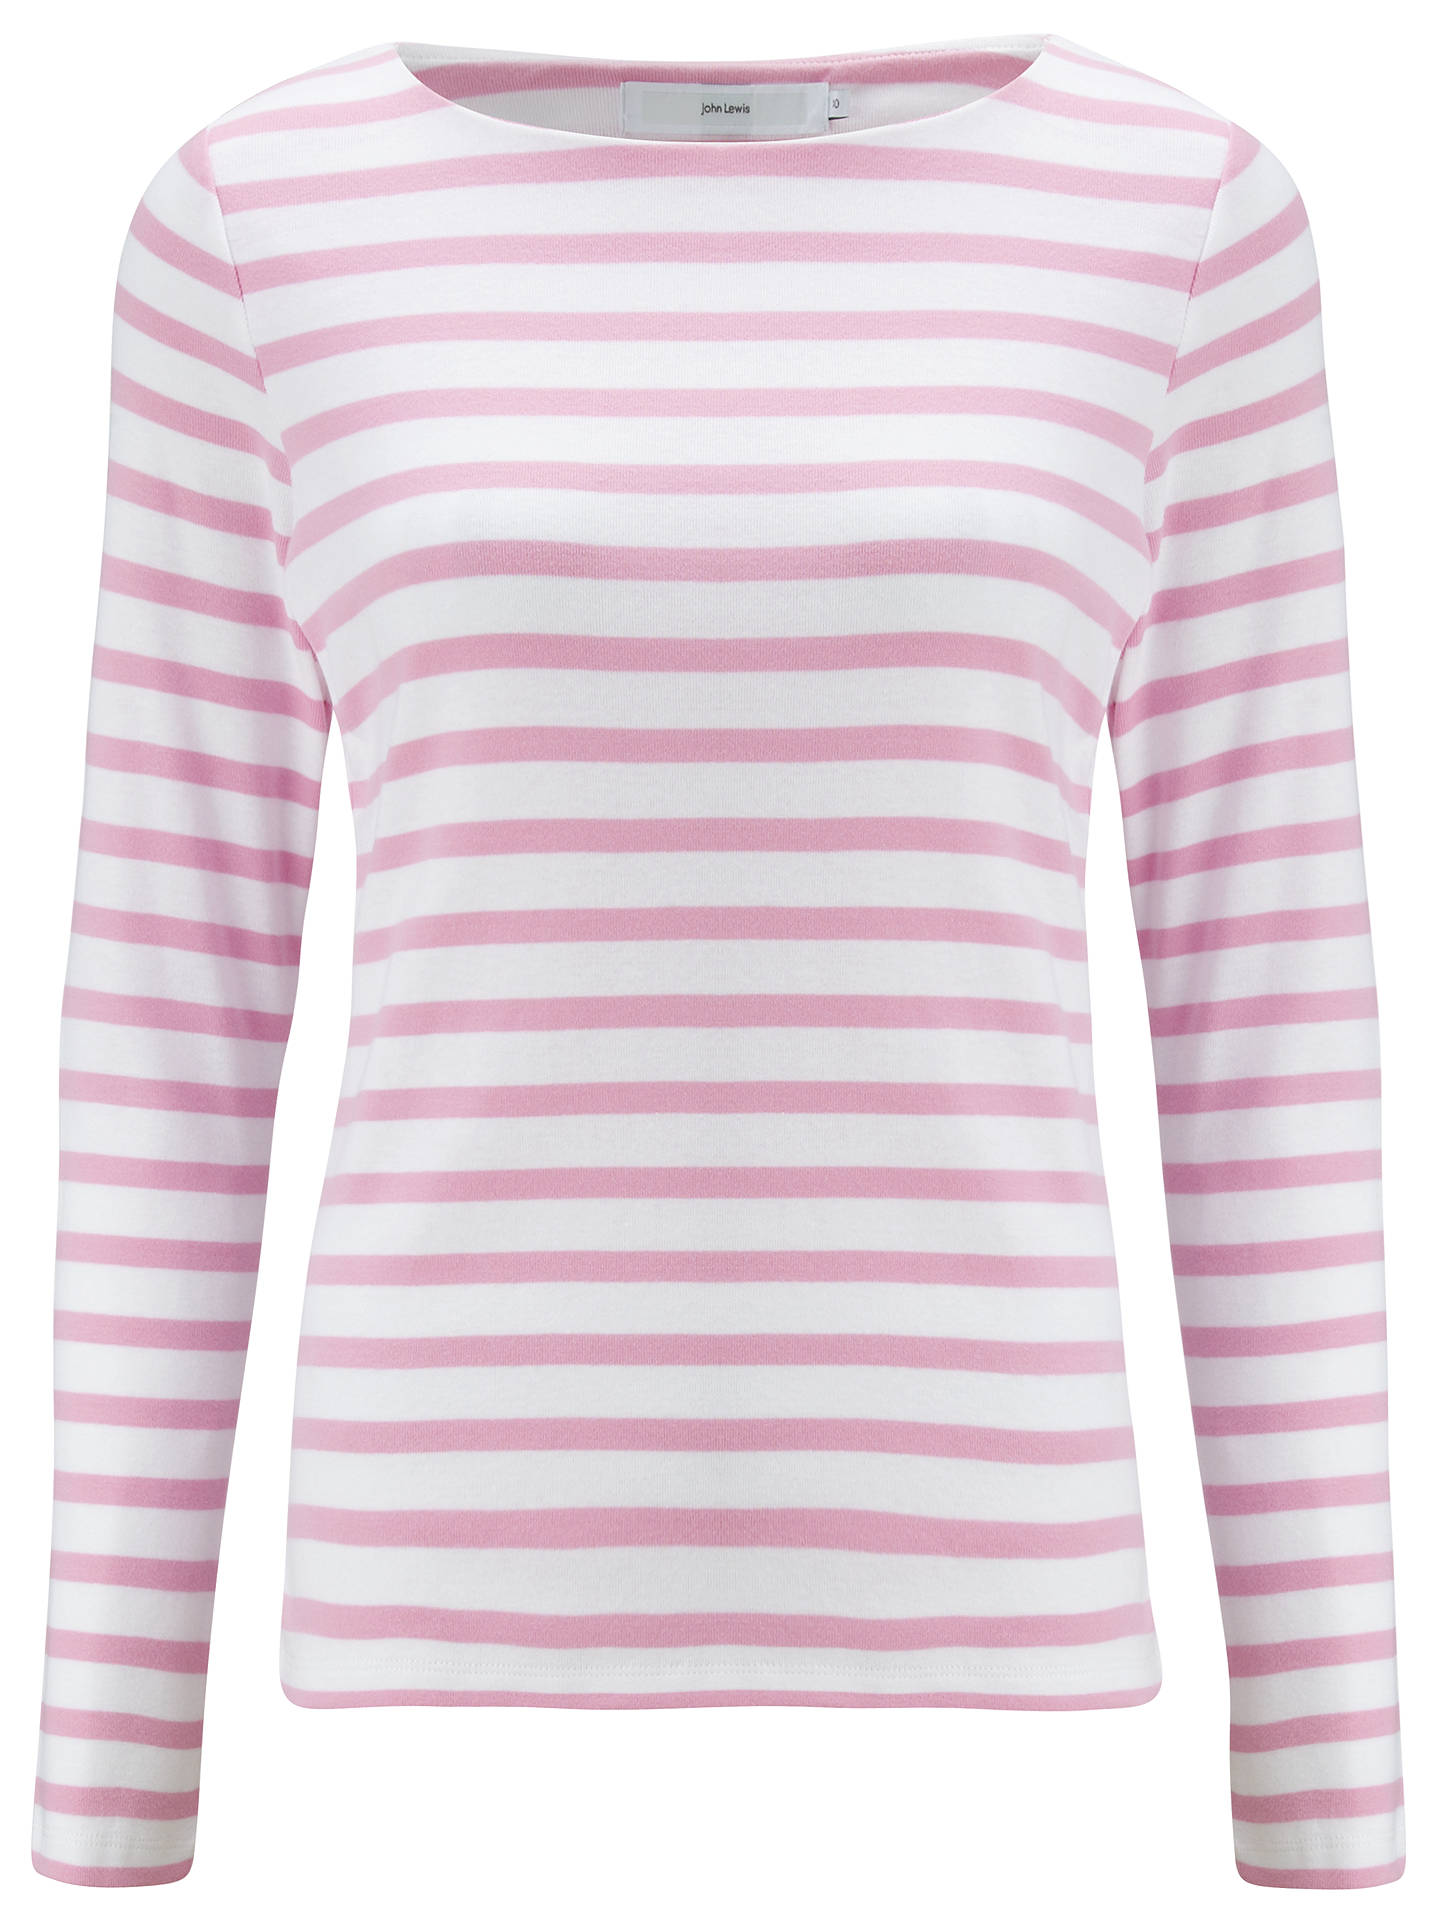 Buy John Lewis Long Sleeve Breton Stripe Top, White / Pale Lilac, 8 Online at johnlewis.com